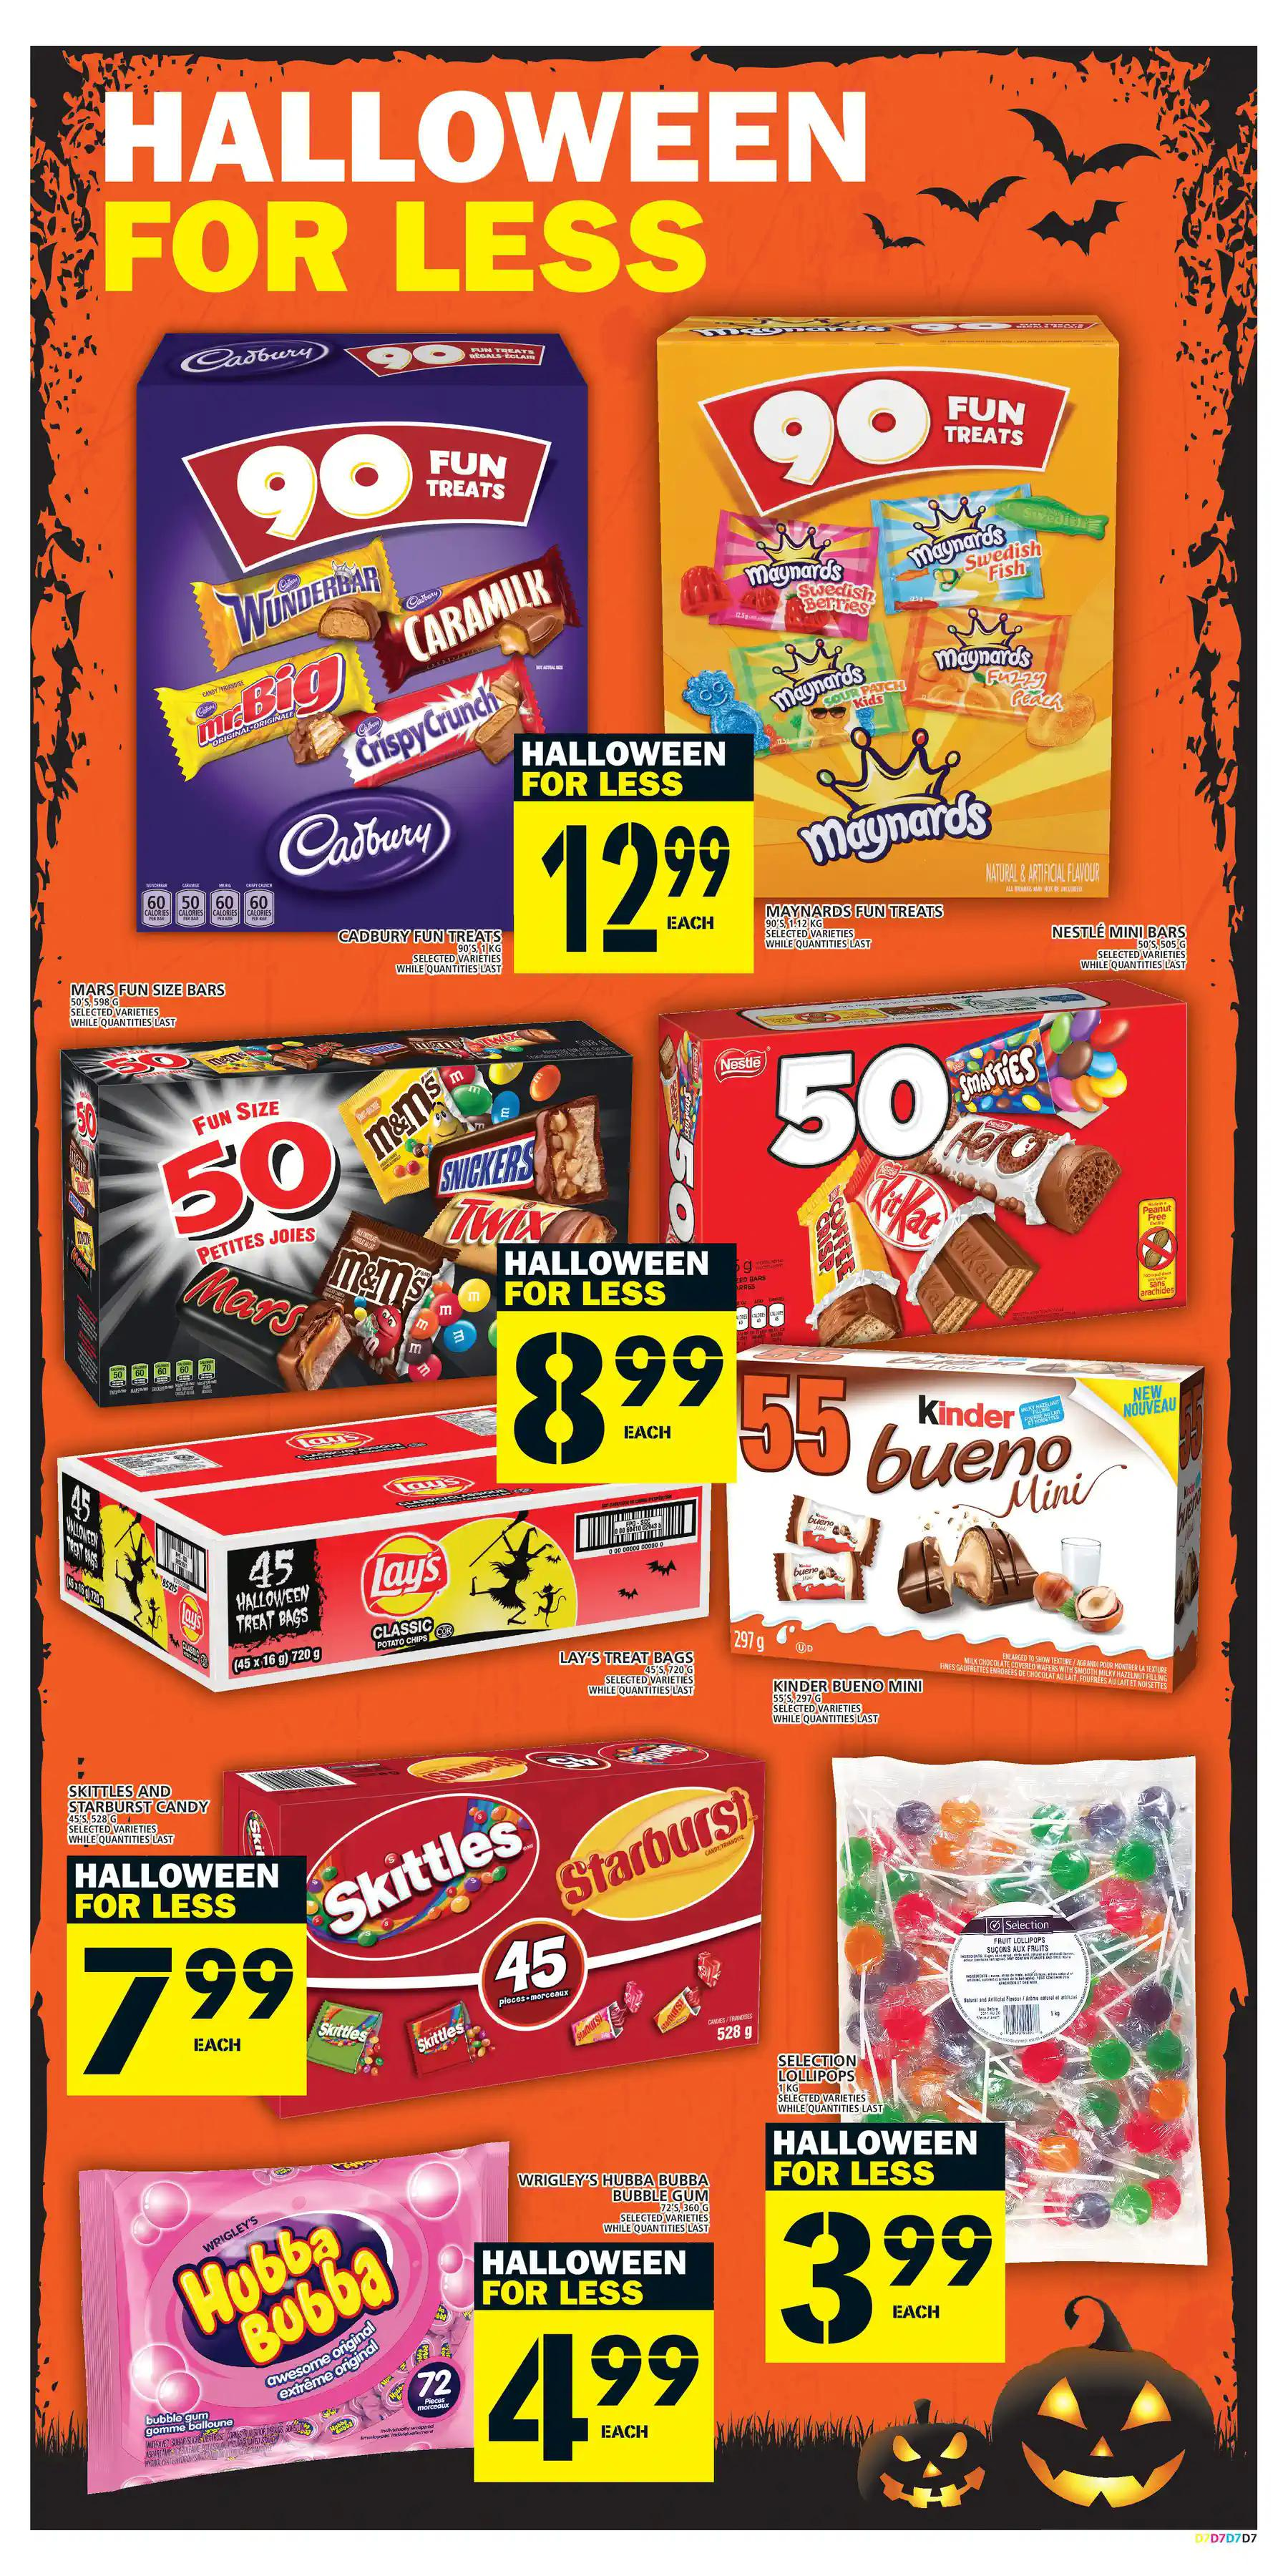 Food Basics - Weekly Flyer Specials - Page 11